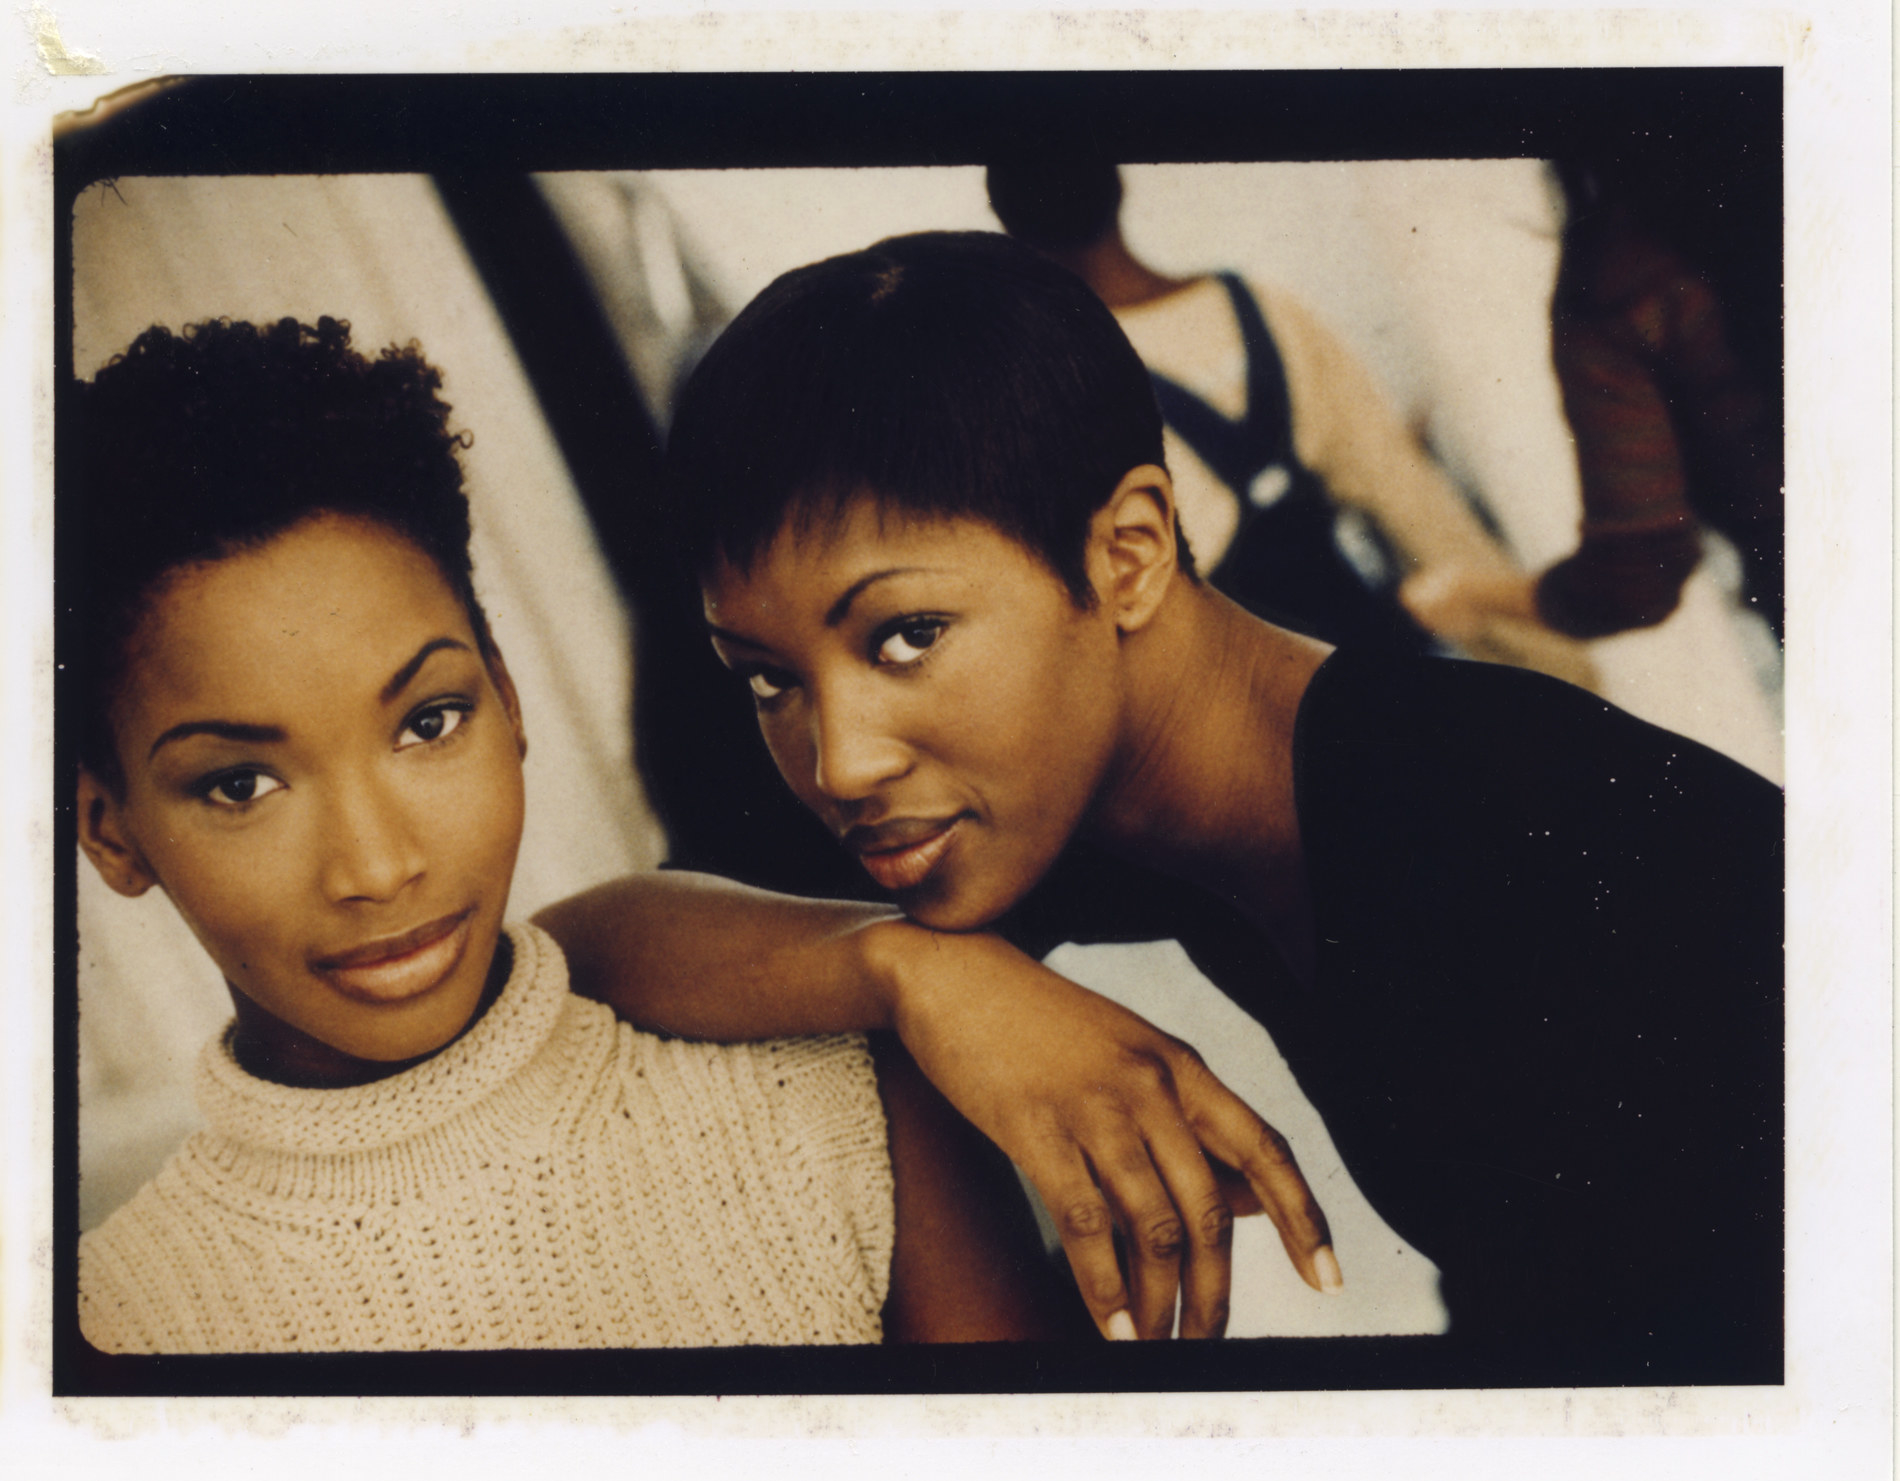 Beverly Peele and Naomi Campbell resting her head on Peele's shoulder, both looking at the camera